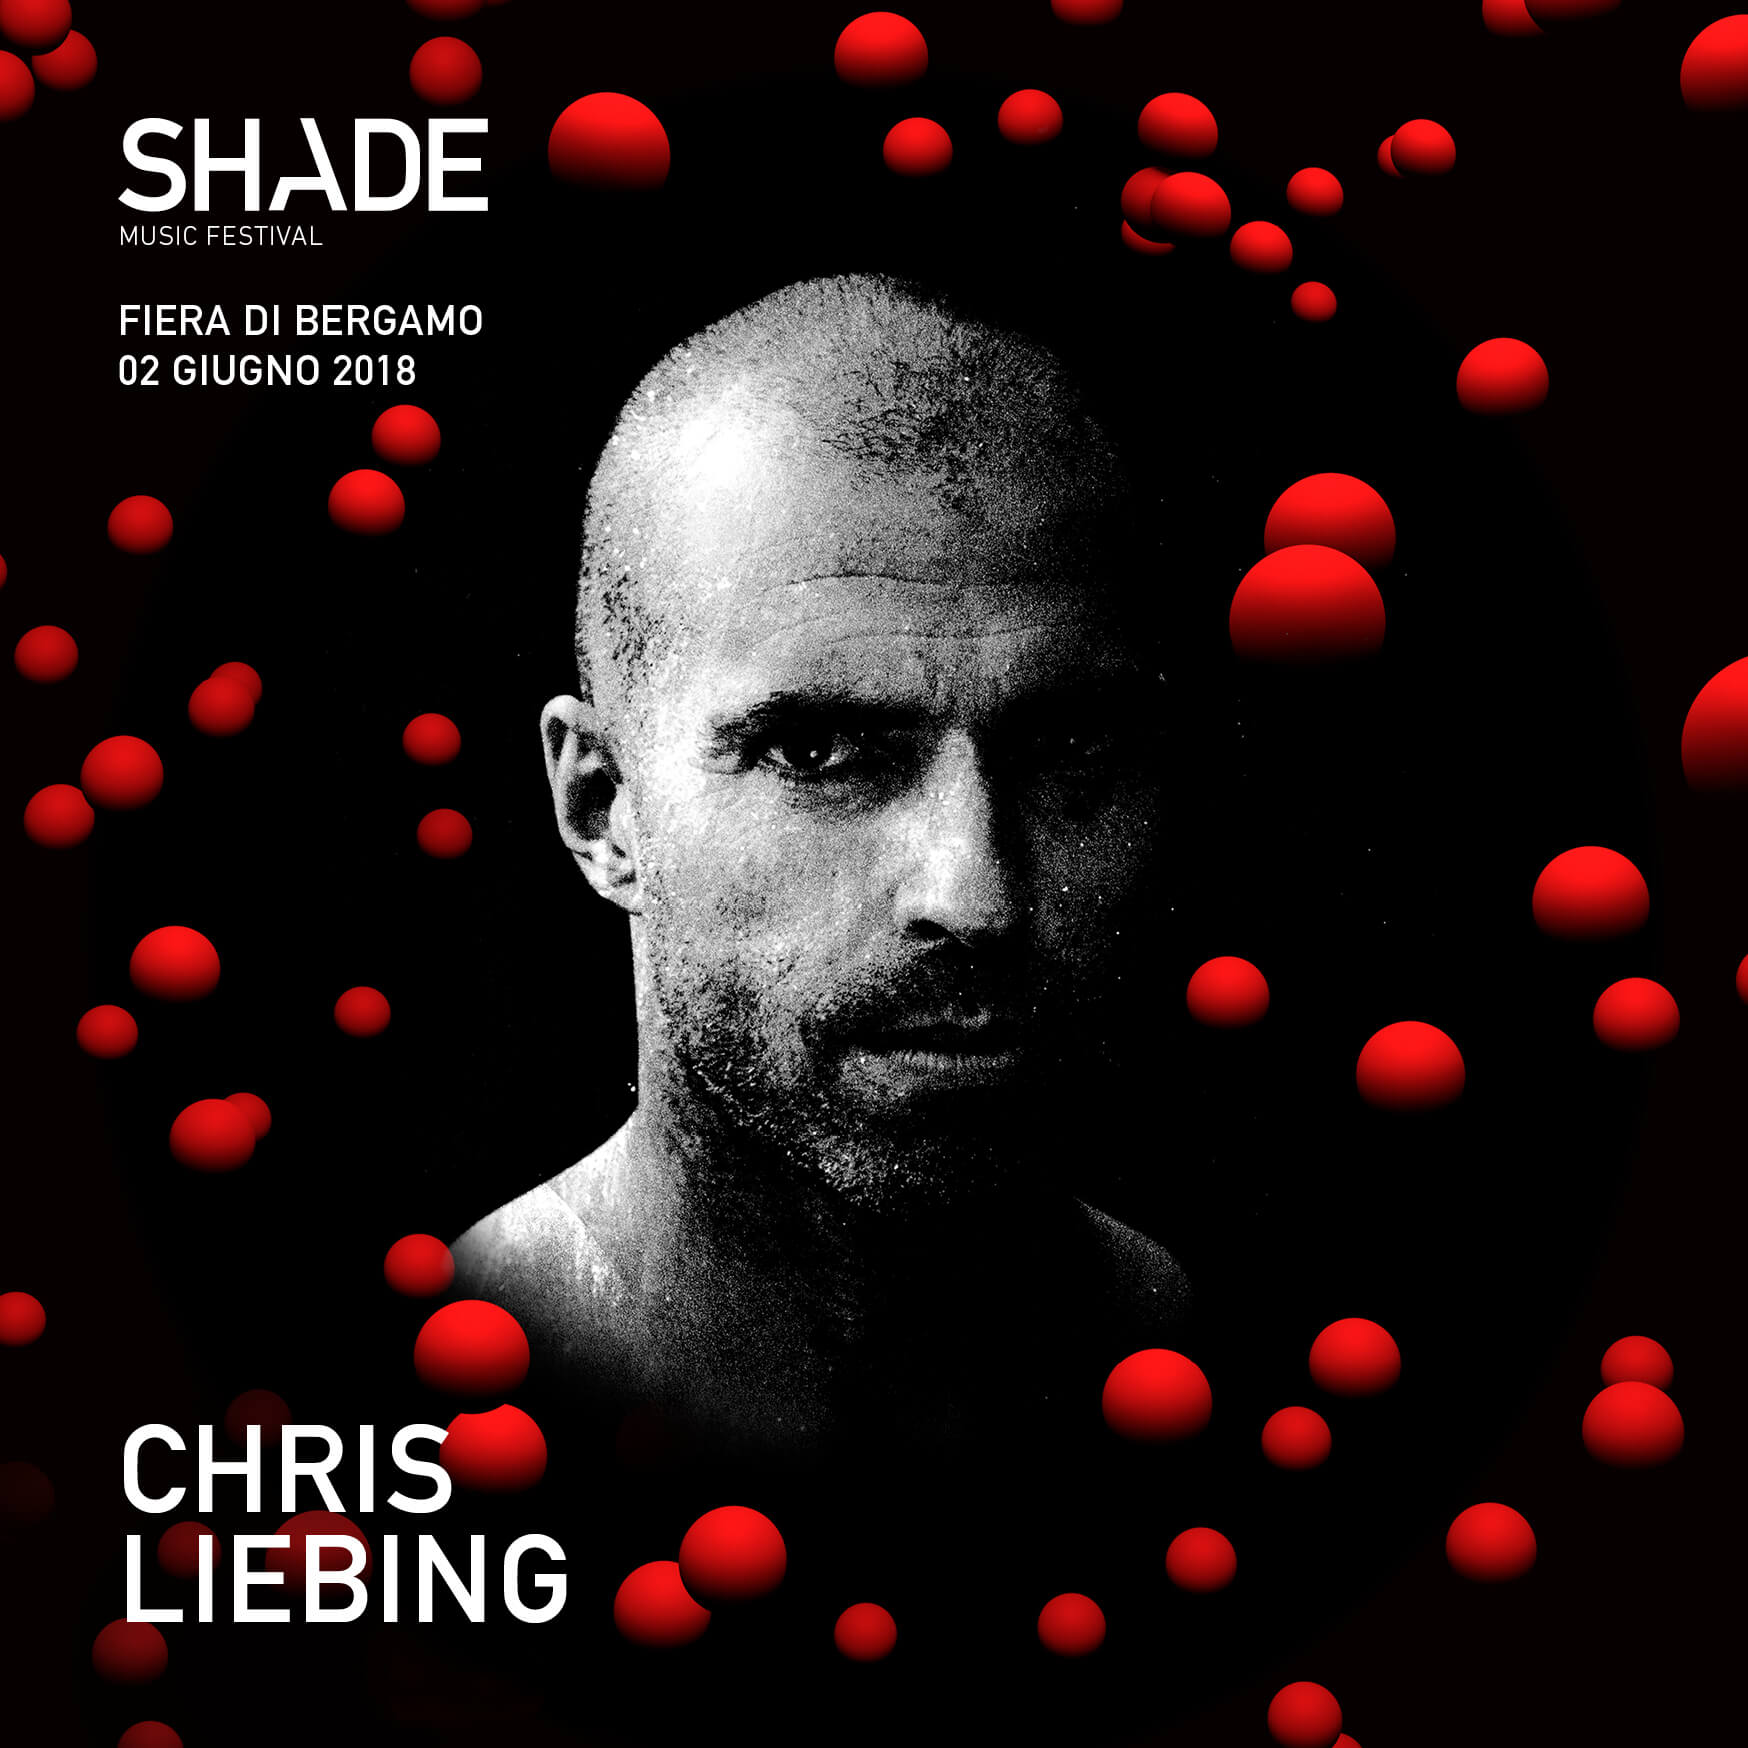 chris liebing shade music festival